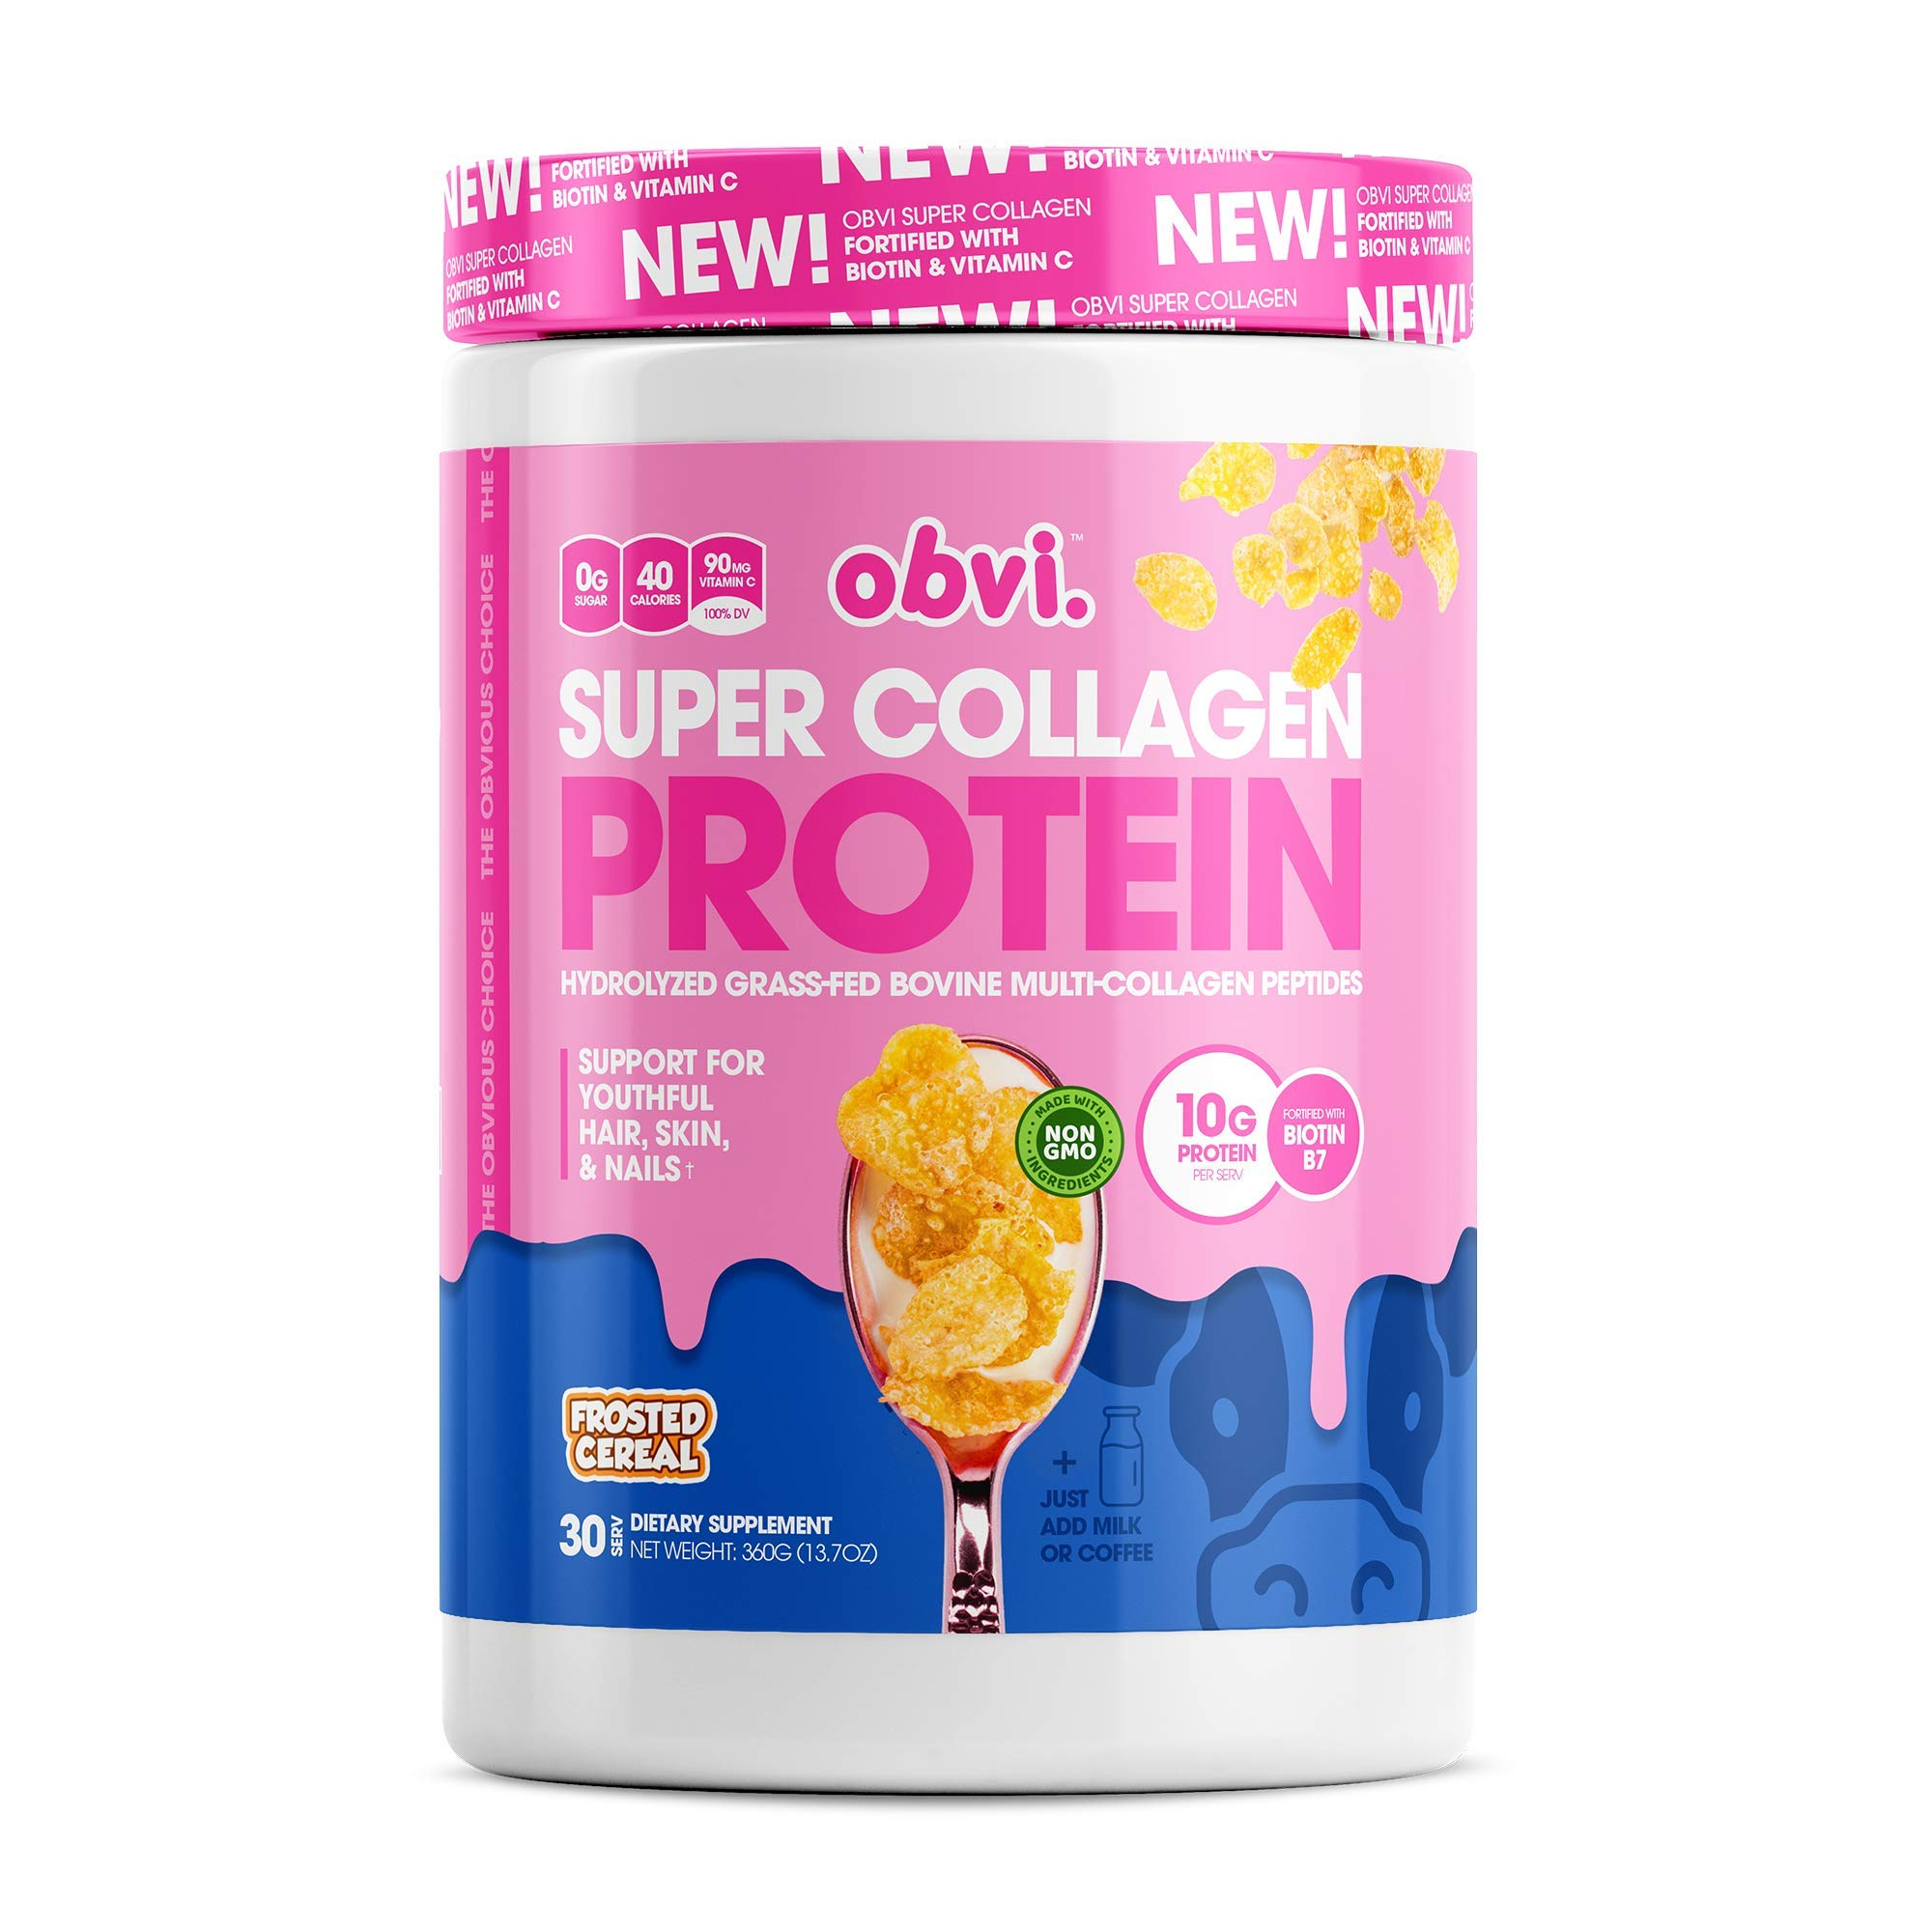 Obvi Multi-Collagen Super Protein Powder, Keto-Friendly, Gluten and Dairy Free, Hydrolyzed Grass-Fed Bovine Collagen Peptides, Supports Gut Health, Healthy Hair, Skin, Nails (Frosted Cereal, 14 Oz)